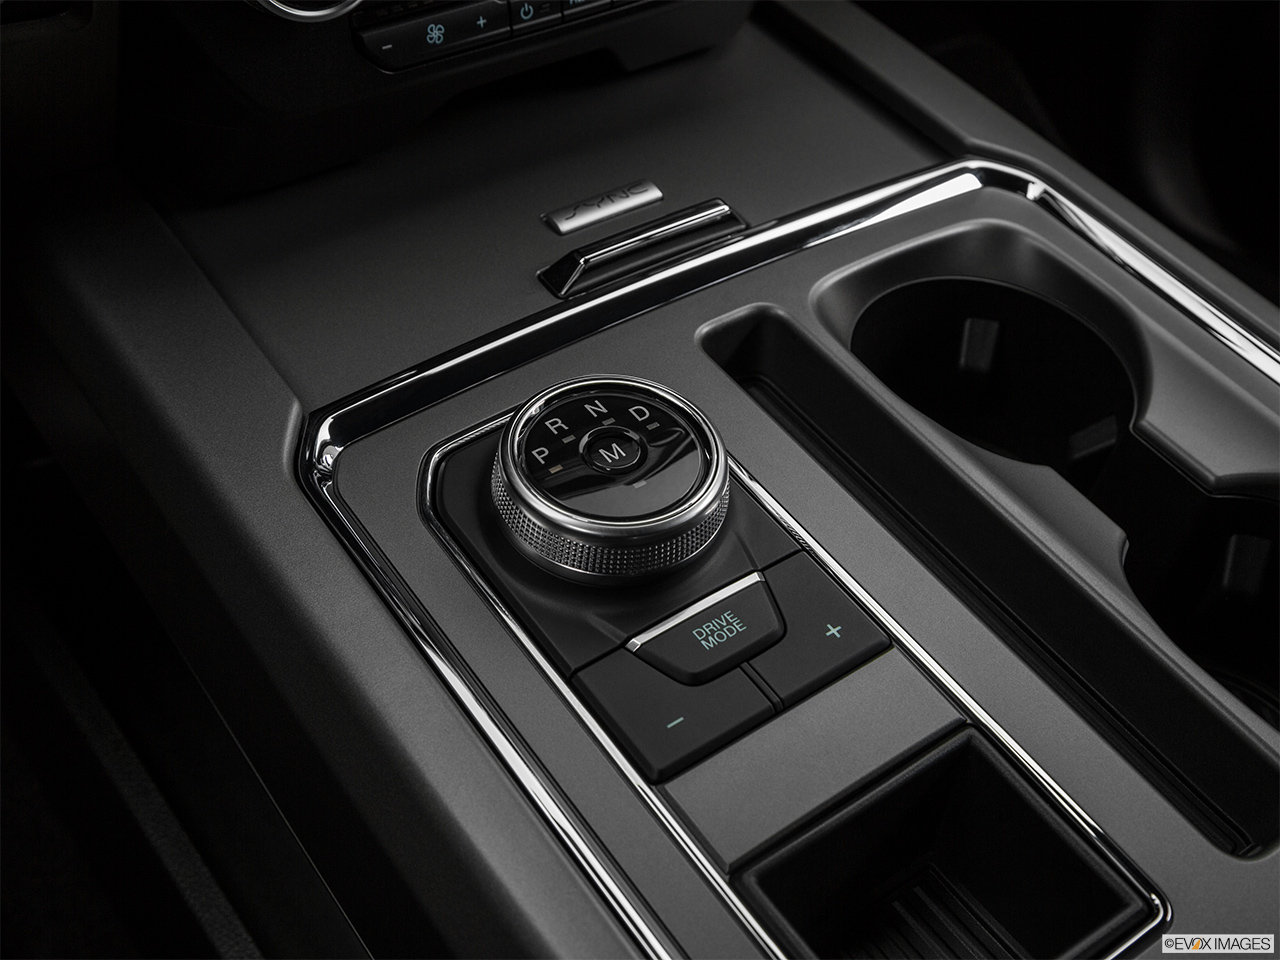 Ford Expedition 2018, Saudi Arabia, Gear shifter/center console.